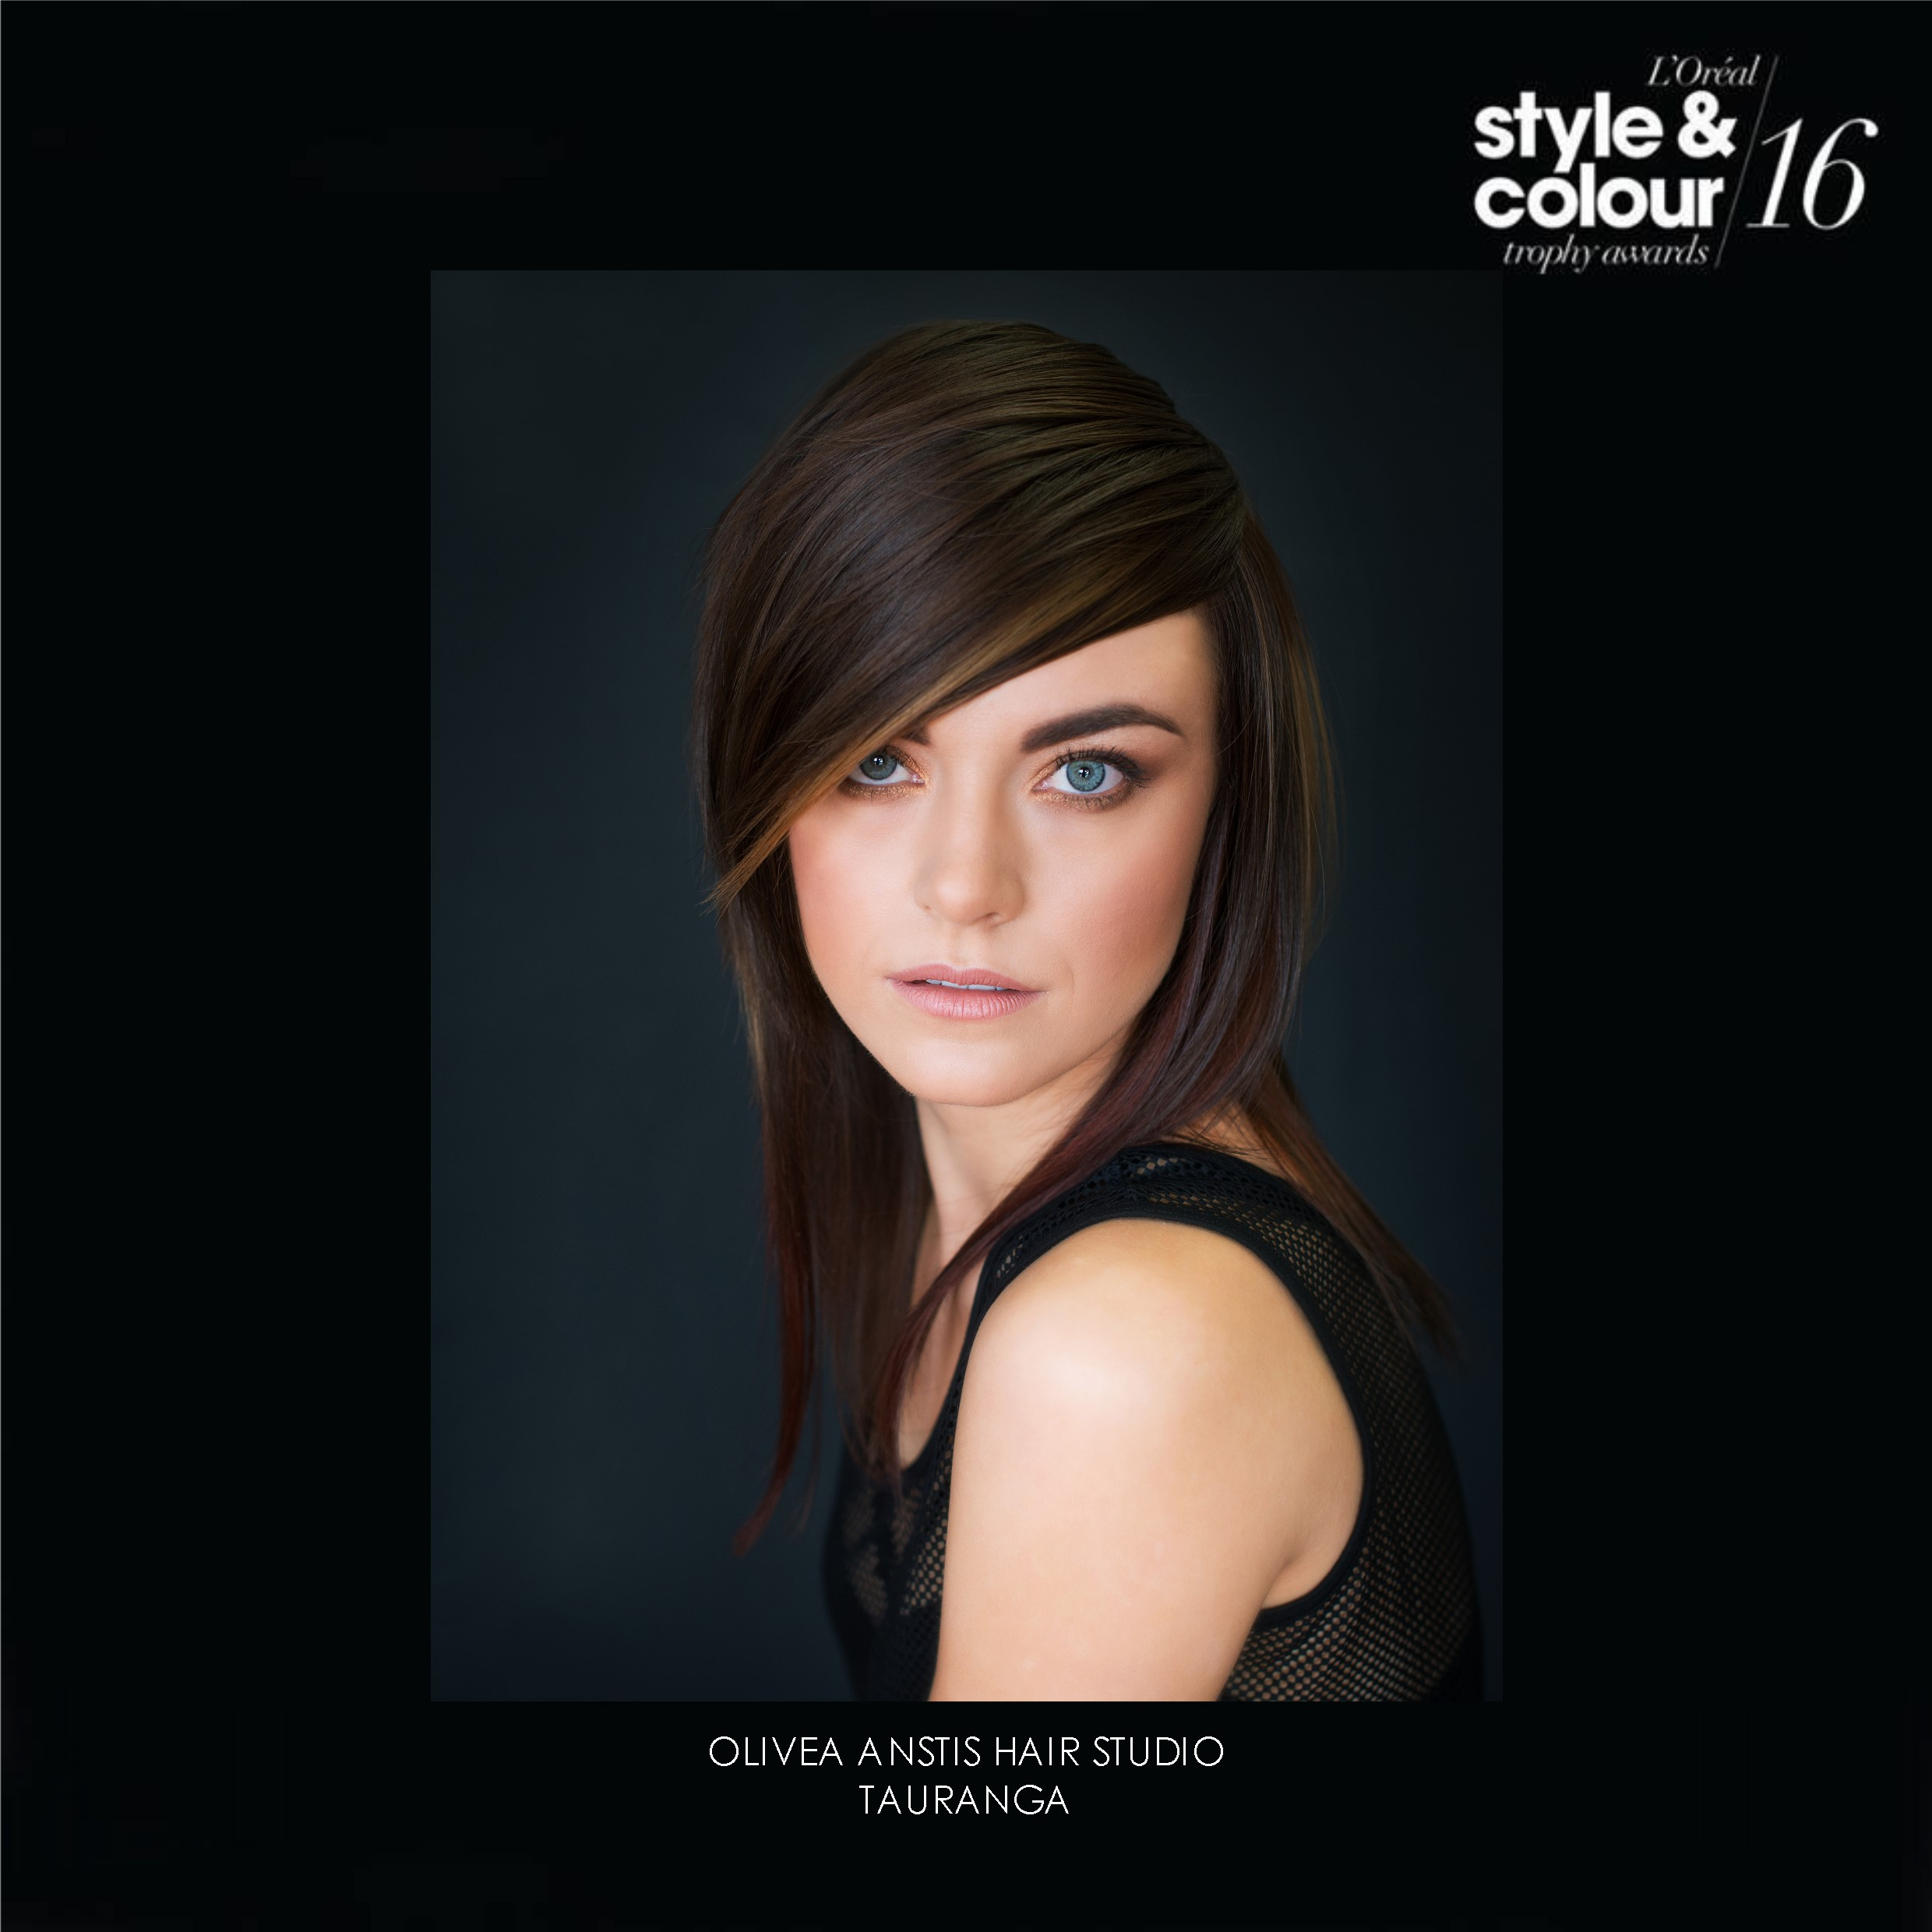 Loreal Style & Colour Trophy Awards